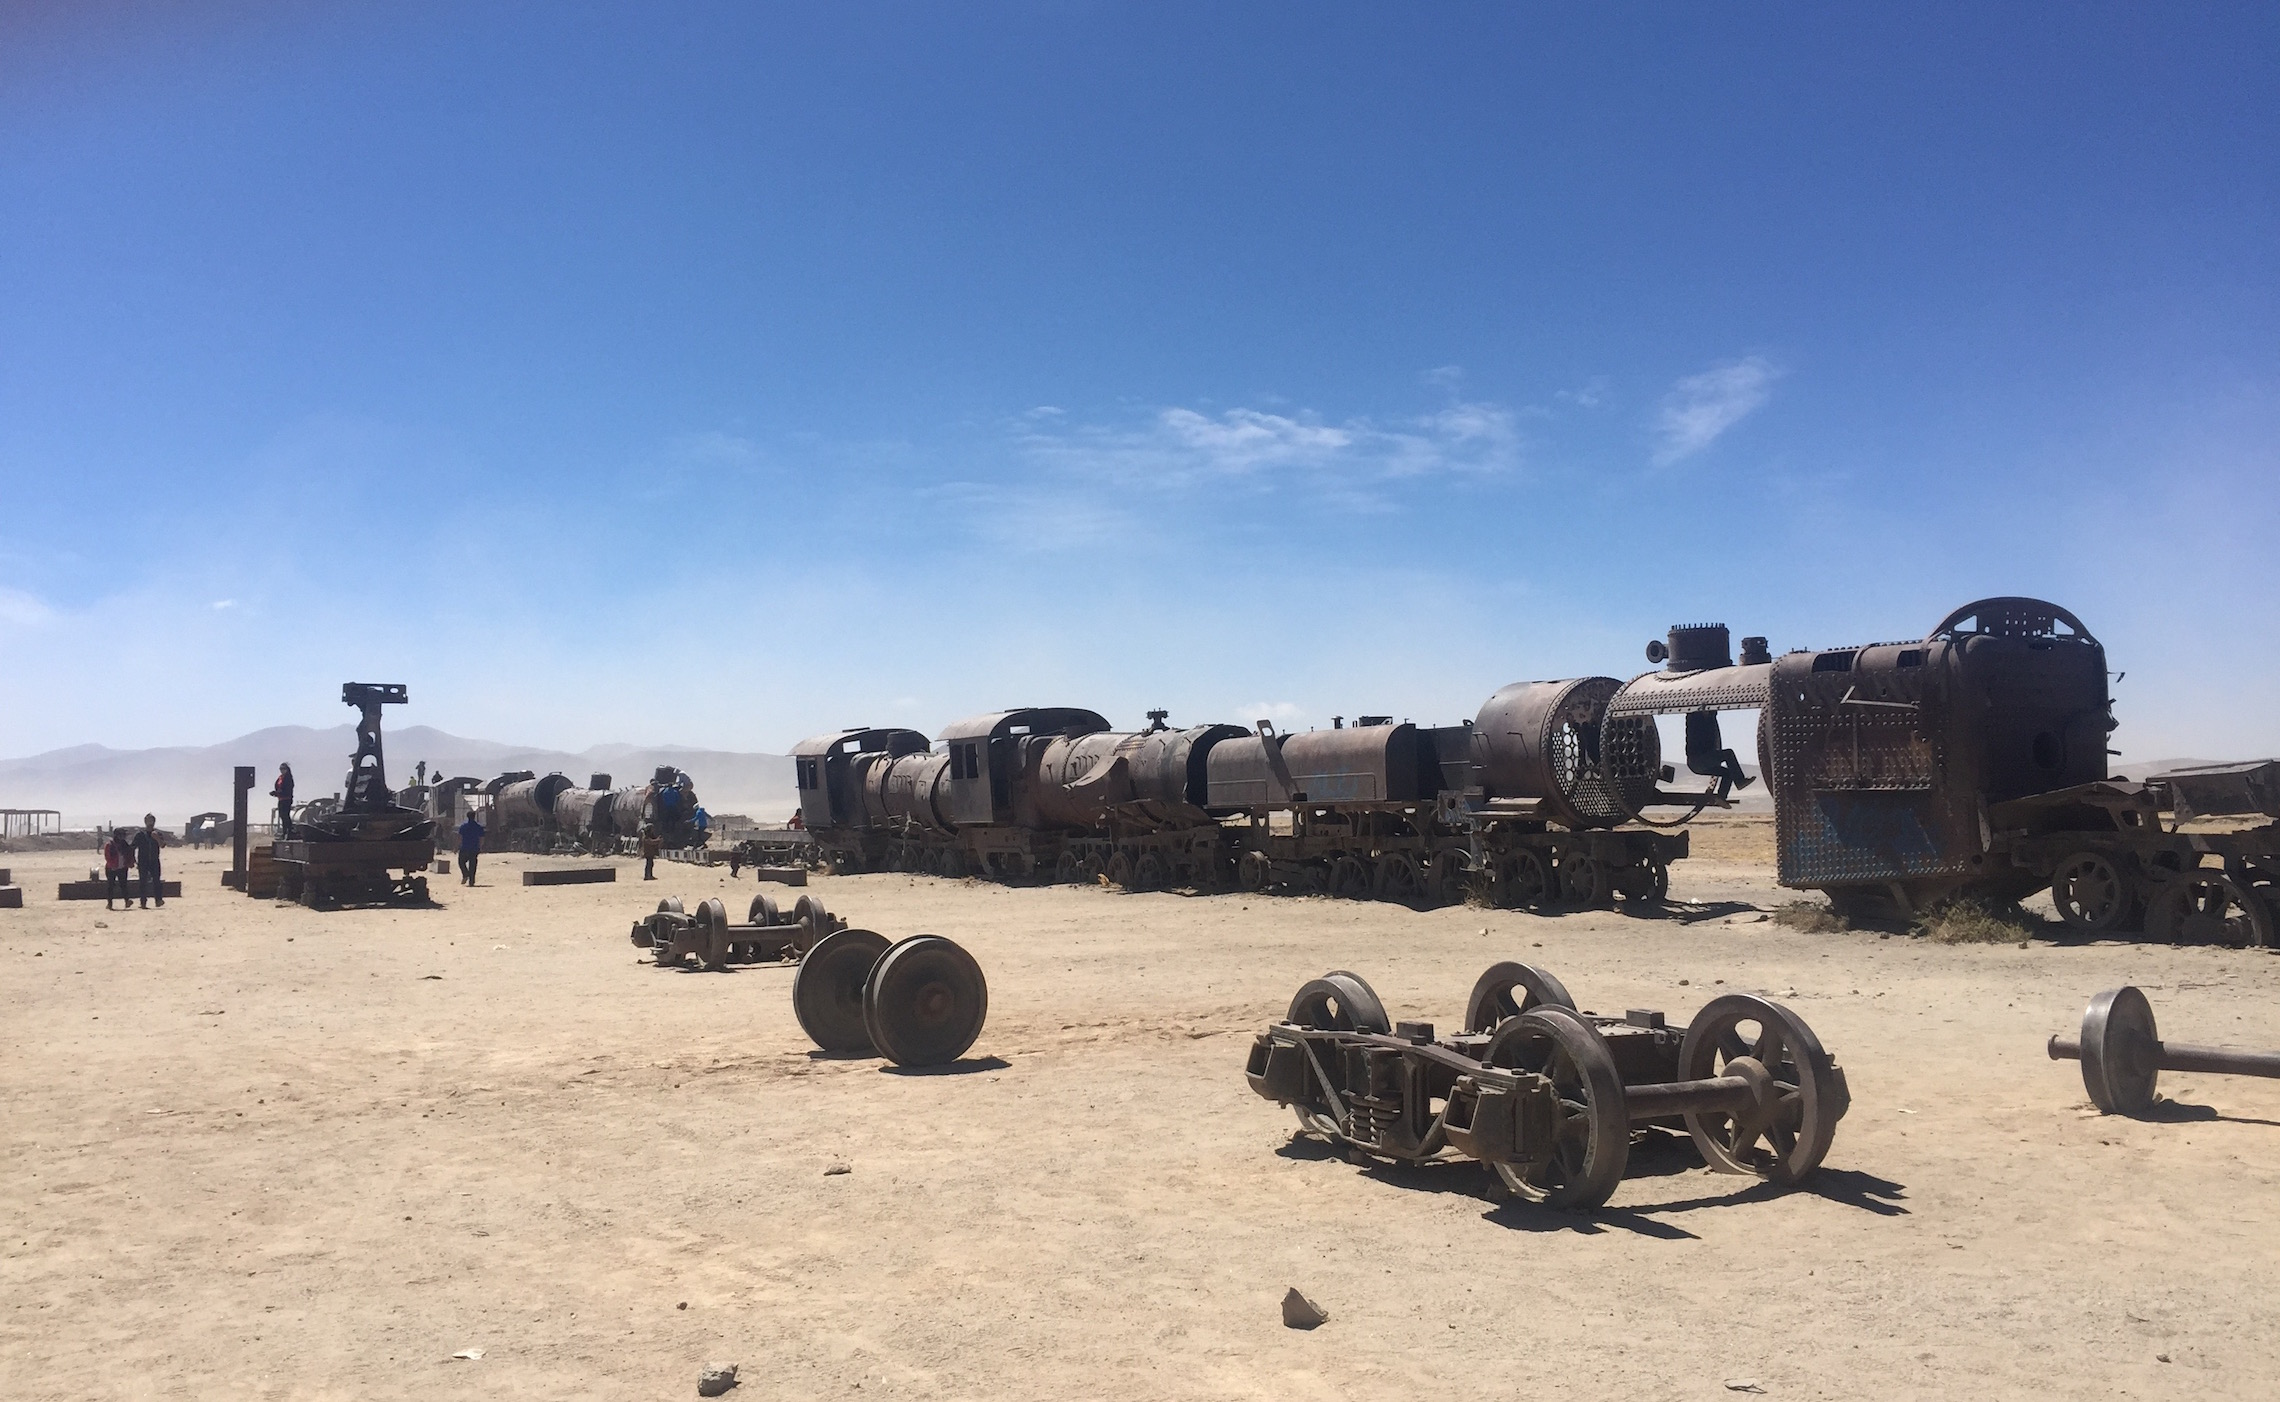 MMT Bolivia Train Graveyard